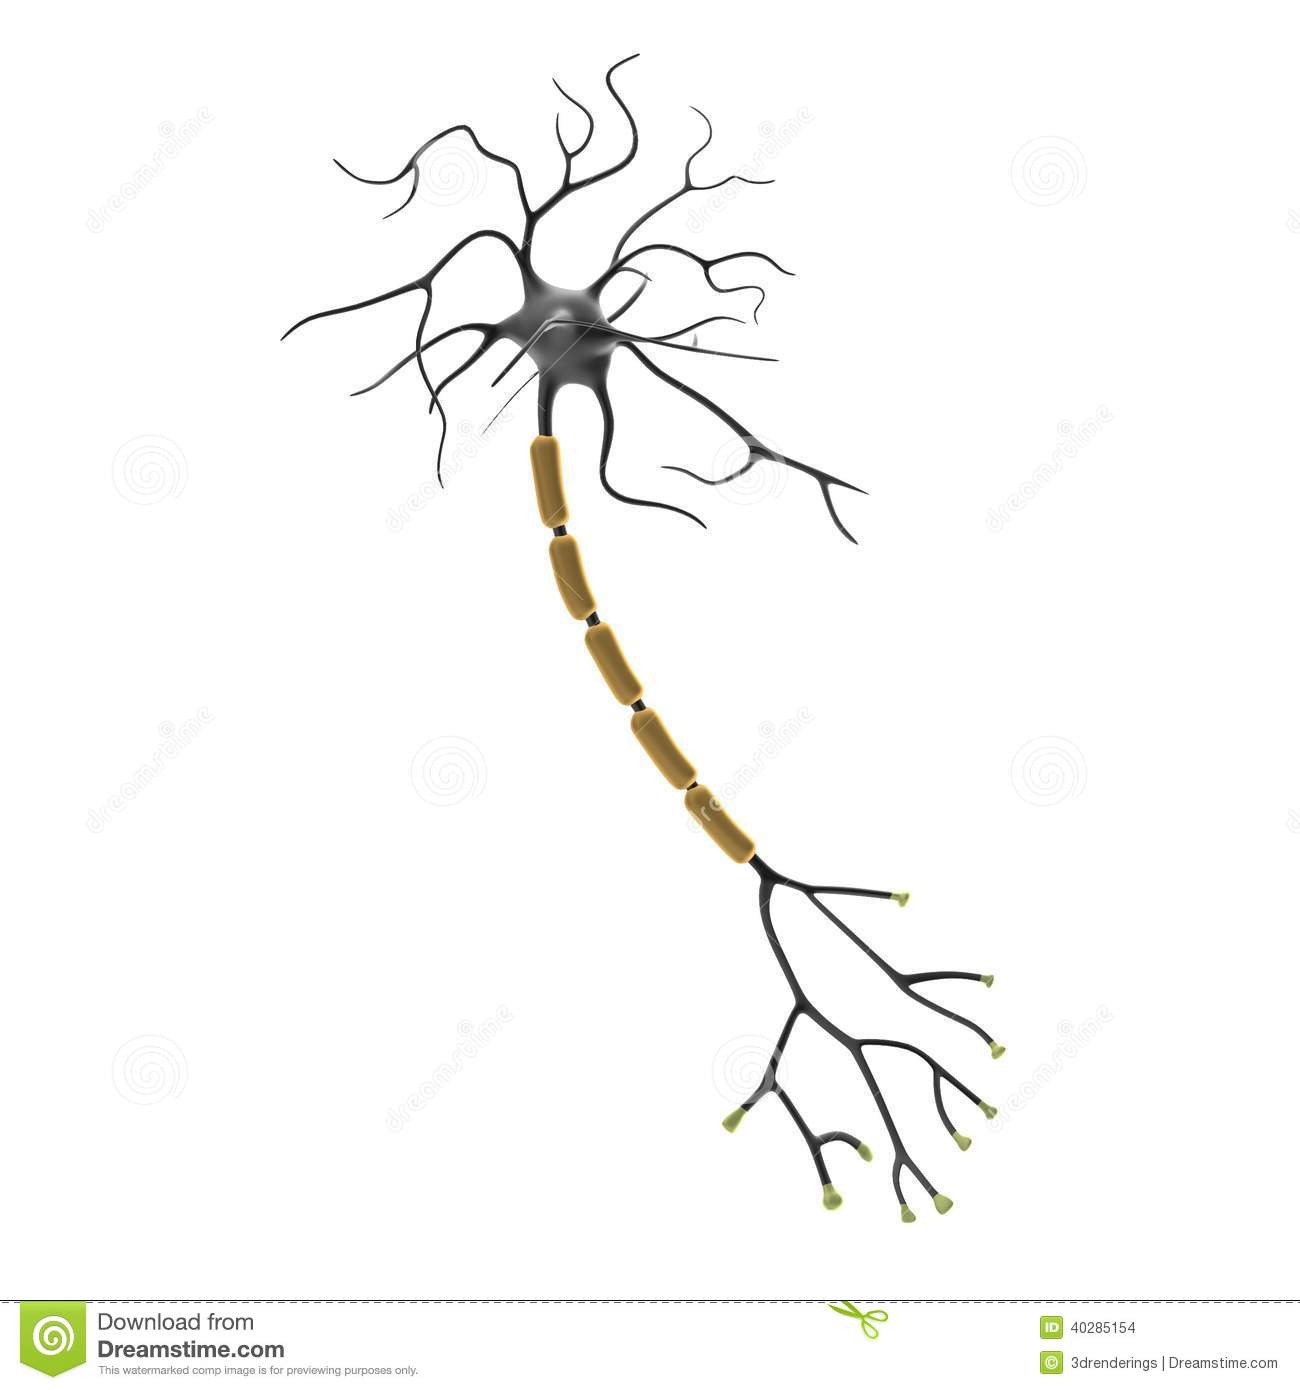 3d Render Of Neuron Stock Illustration Image Of Neuron